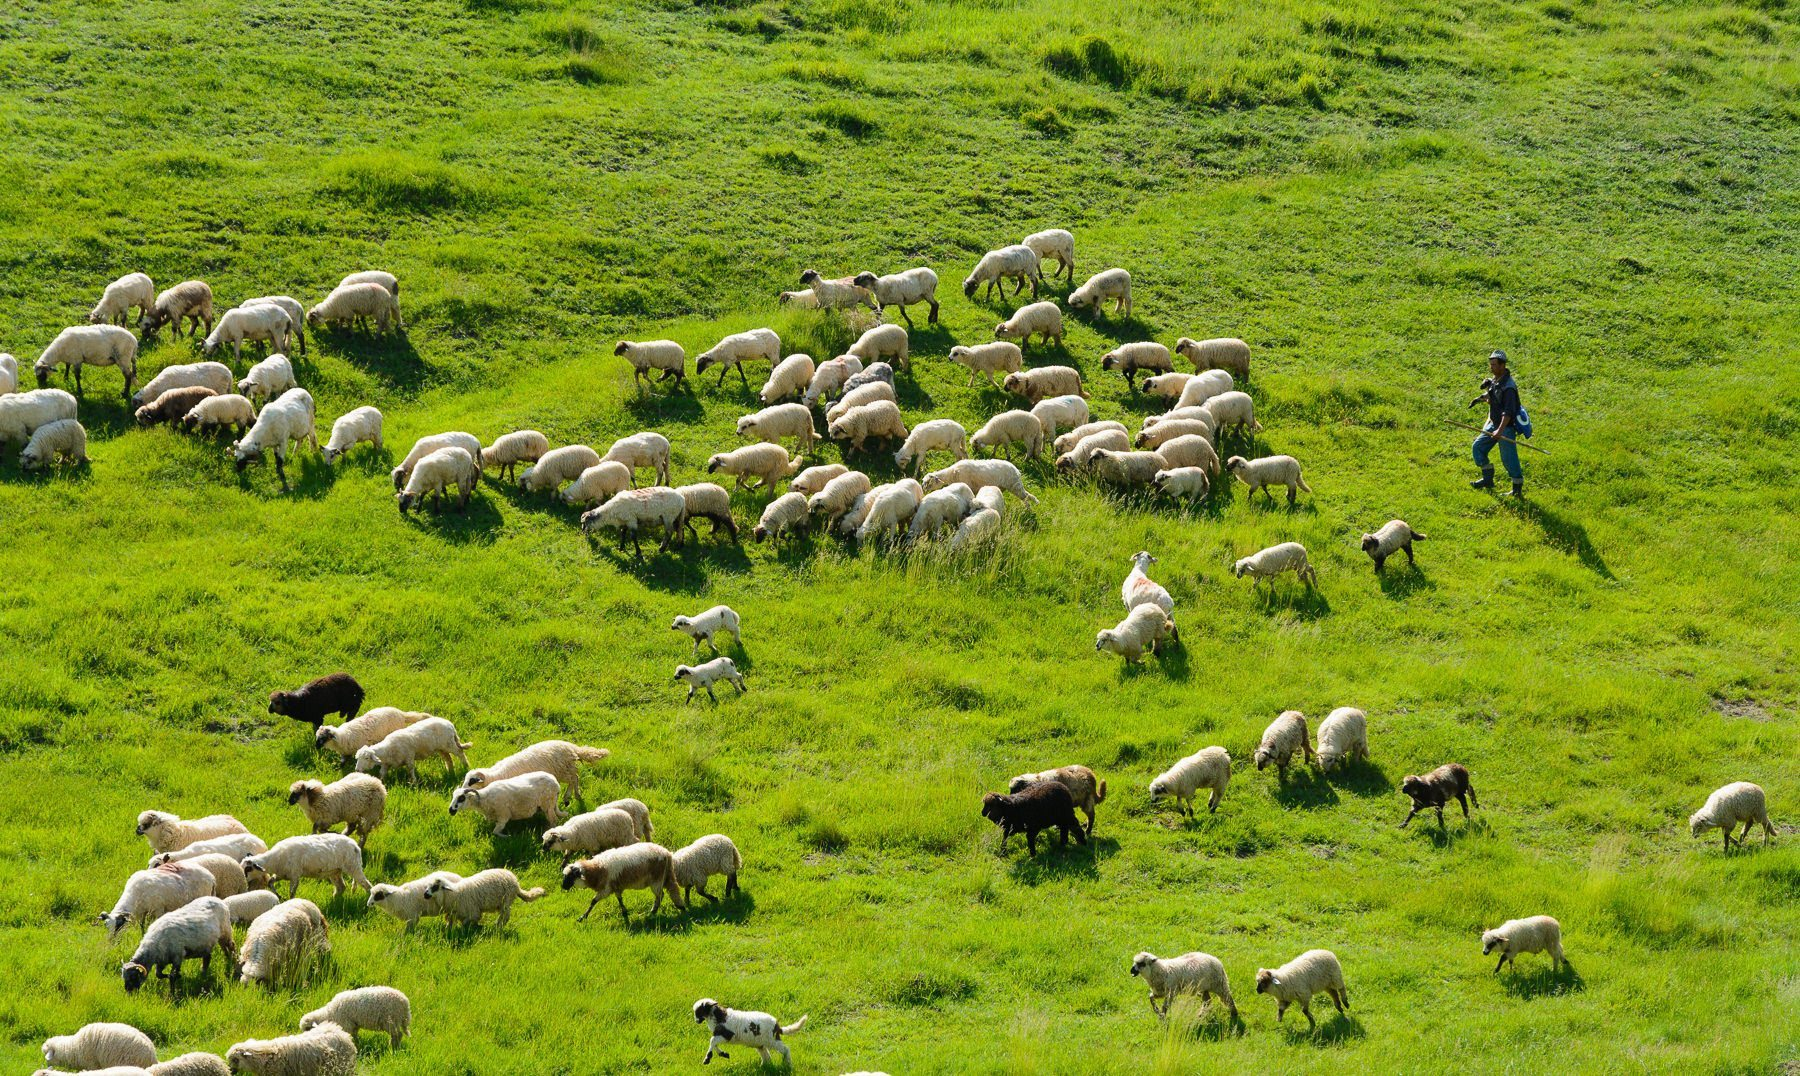 a shepherd leads his flock of sheep across green fields in Northern Romania © Hamish Scott-Brown